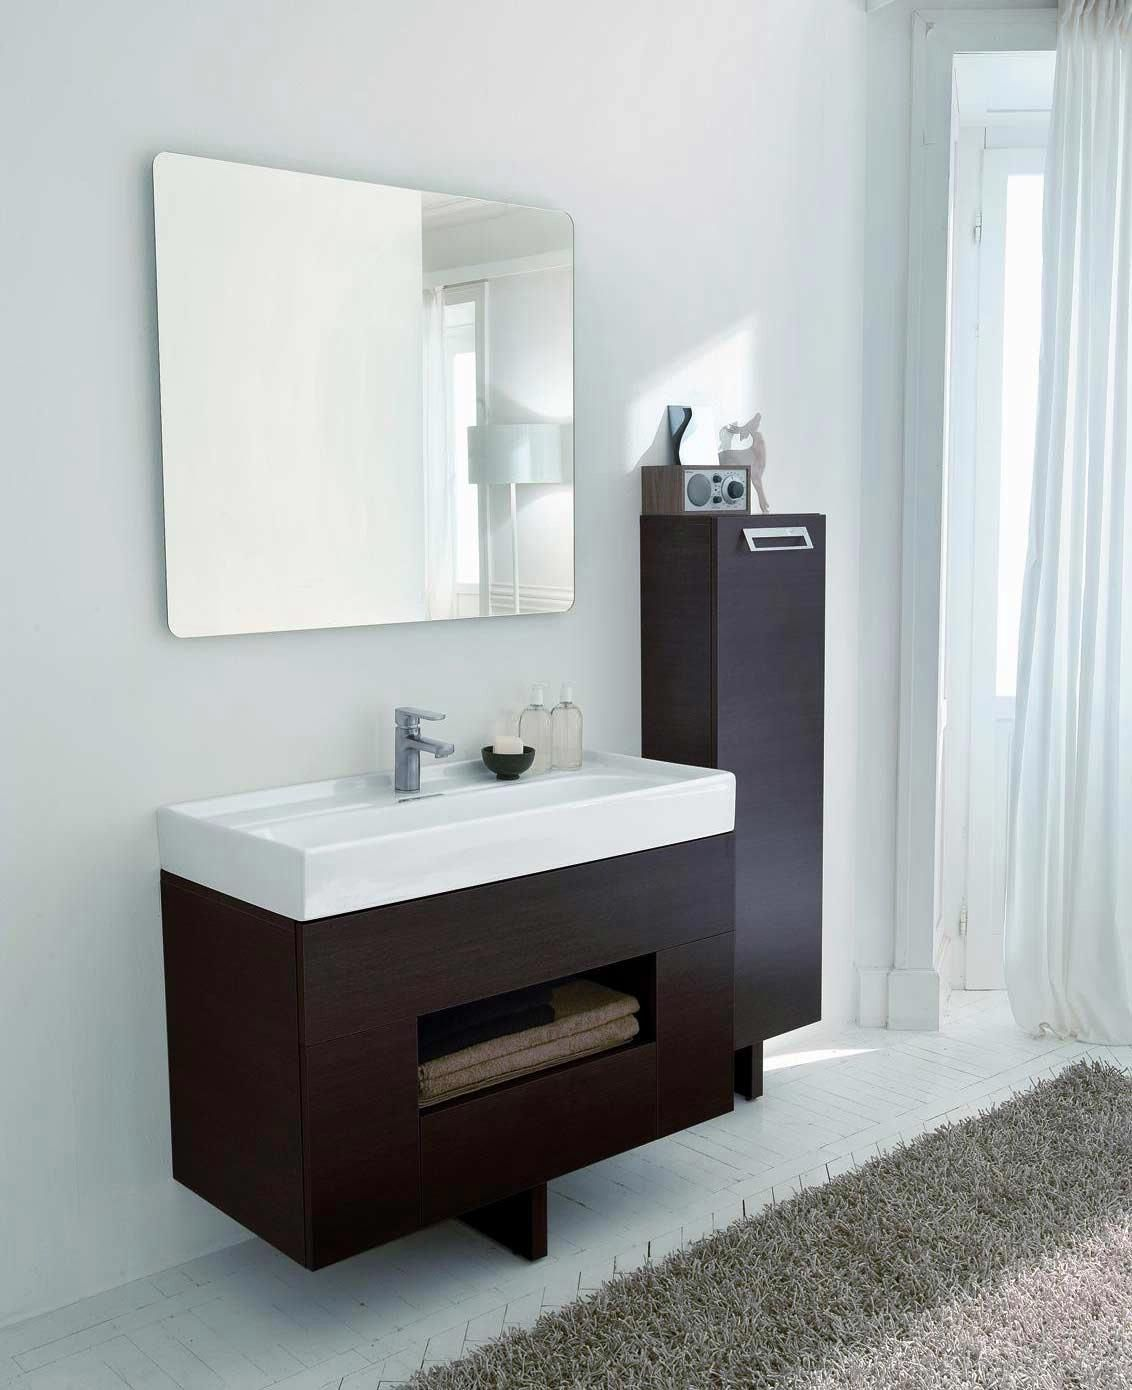 1000 images about modern bathroom vanities on pinterest modern bathroom vanities double sink bathroom and bathroom vanities bathroom furniture popular design